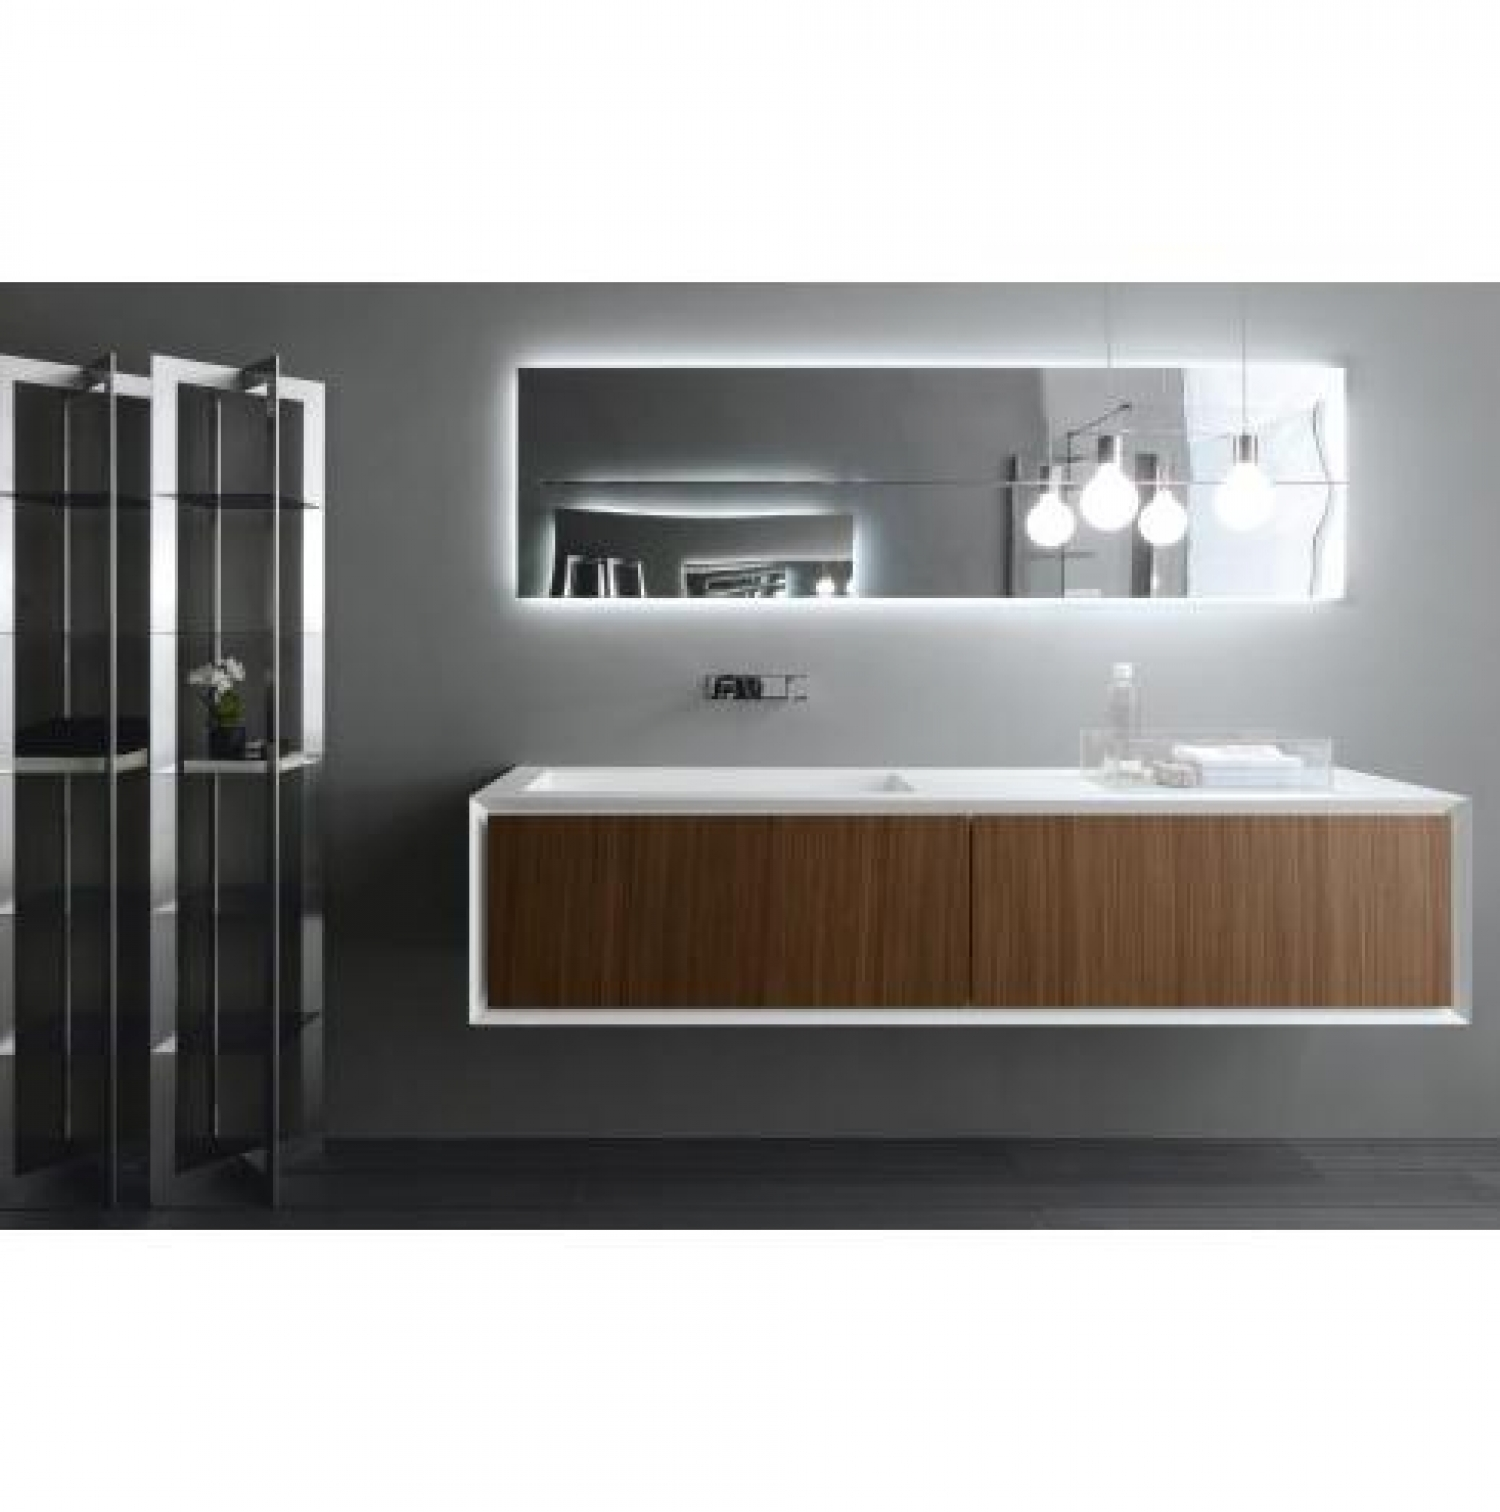 meuble vasque salle de bain design excellent upique meuble salle de bain design et meuble salle. Black Bedroom Furniture Sets. Home Design Ideas